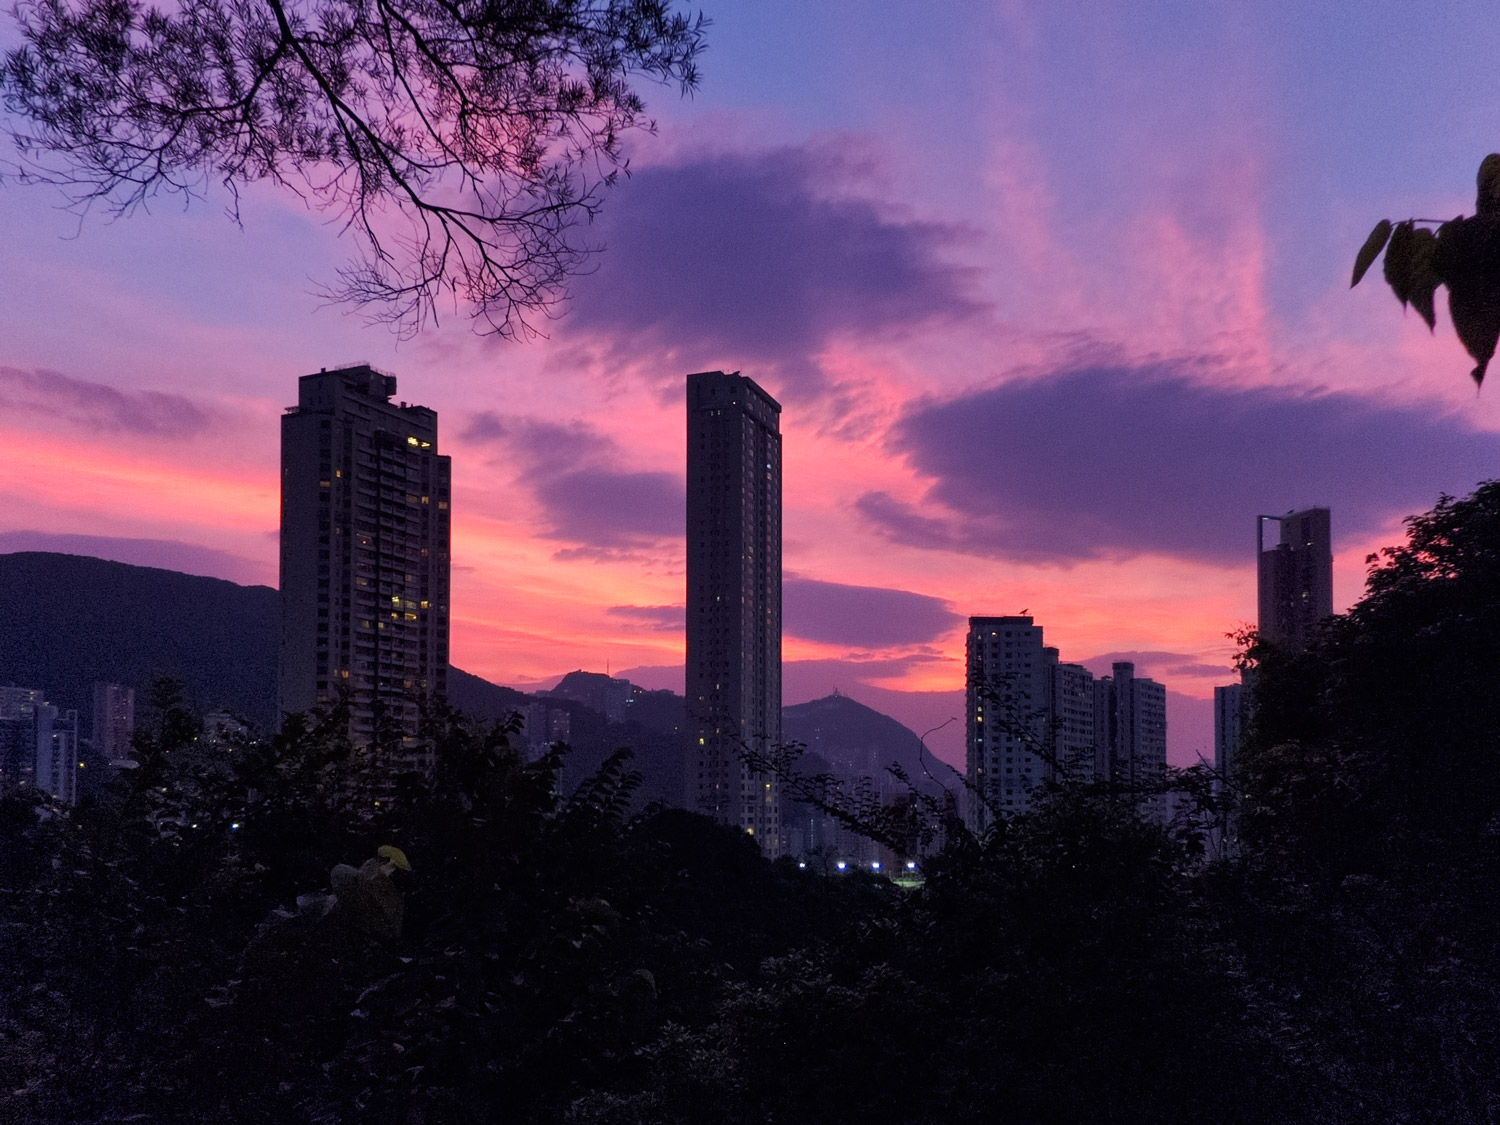 Evening Sky Over Hong Kong Island